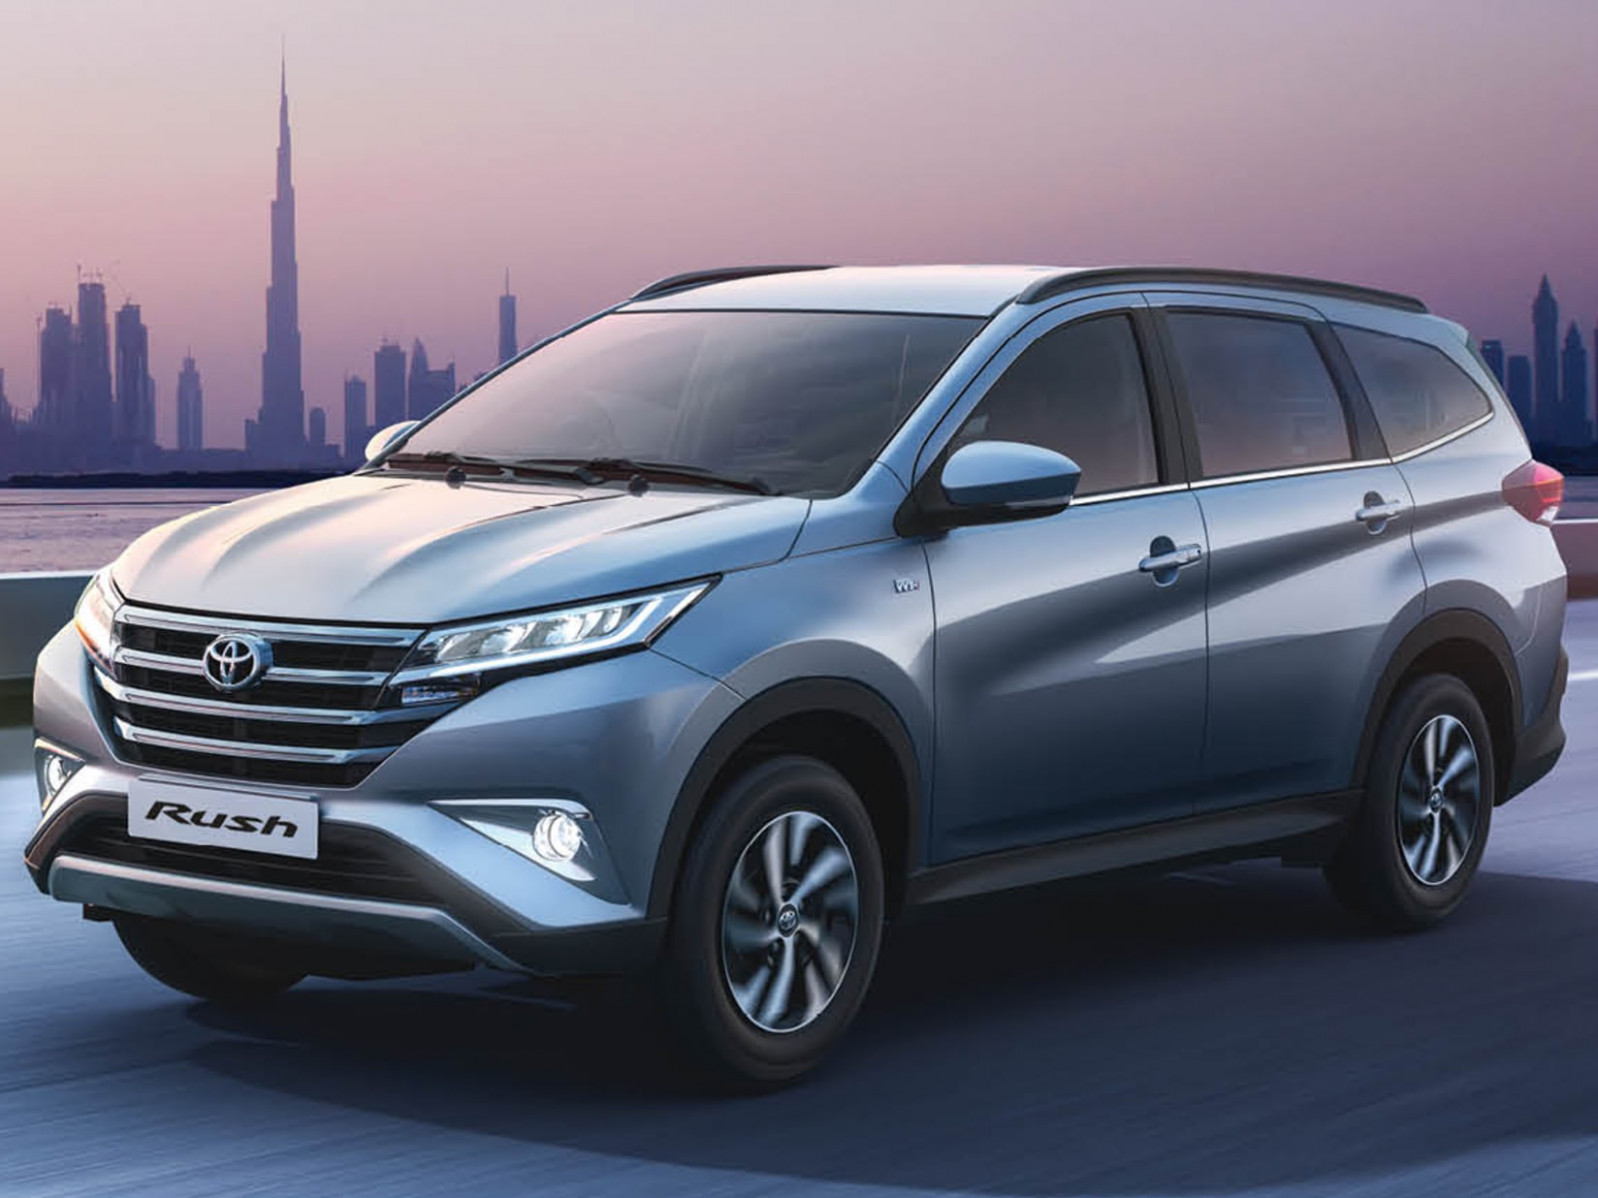 New Toyota Rush 10 for Sale in the UAE | Toyota - toyota uae offers 2020